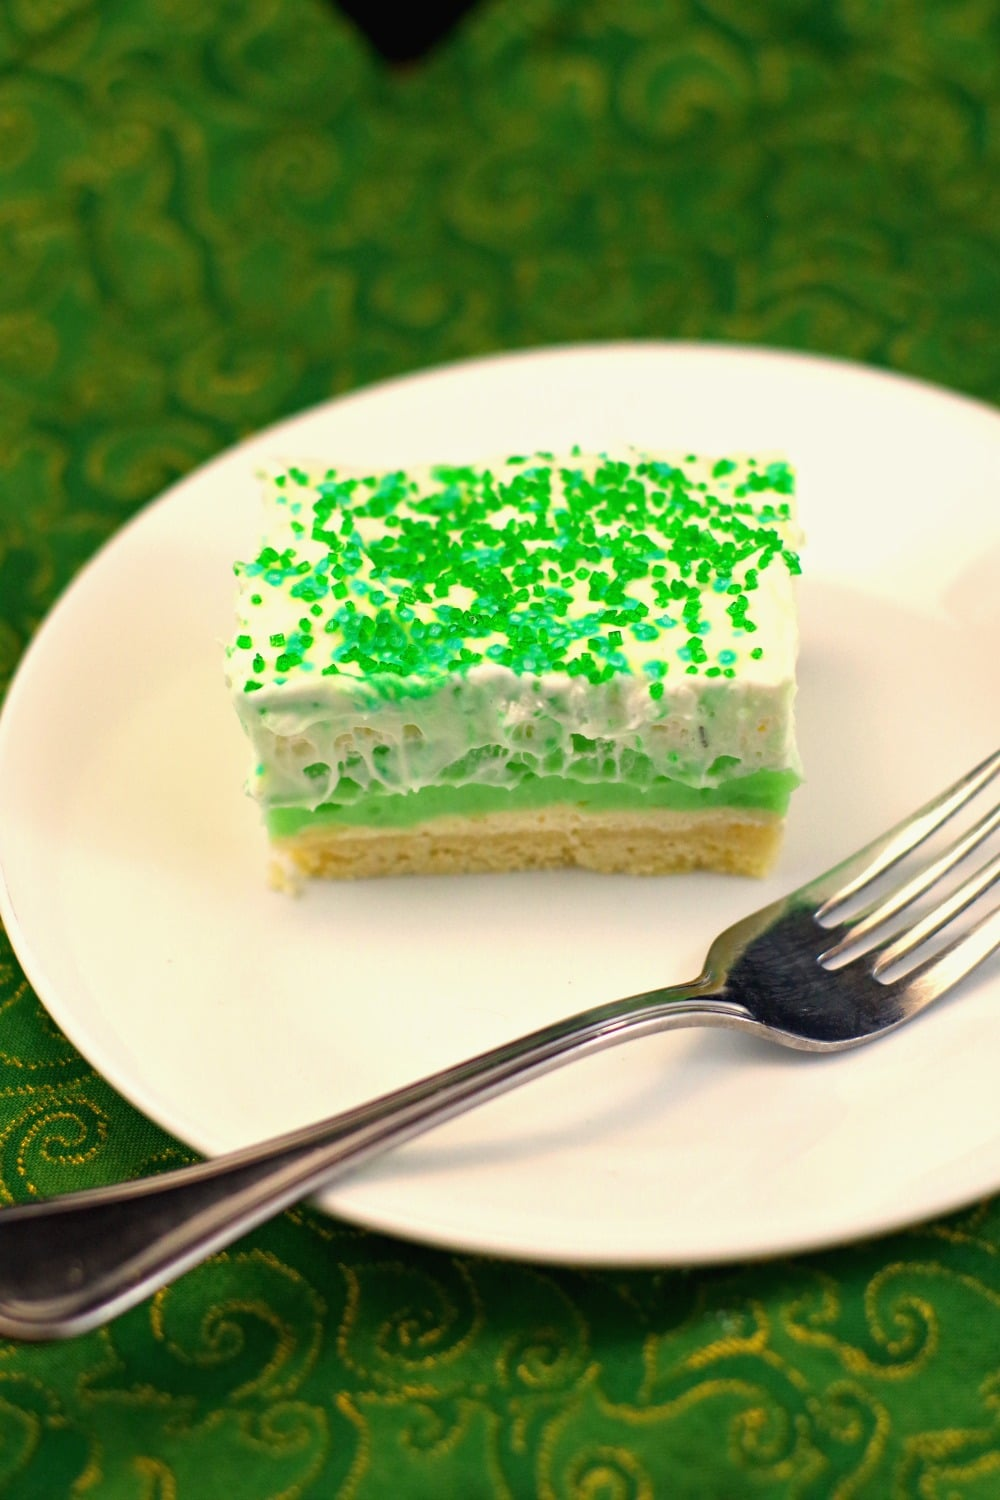 piece-of-pistachio-dessert